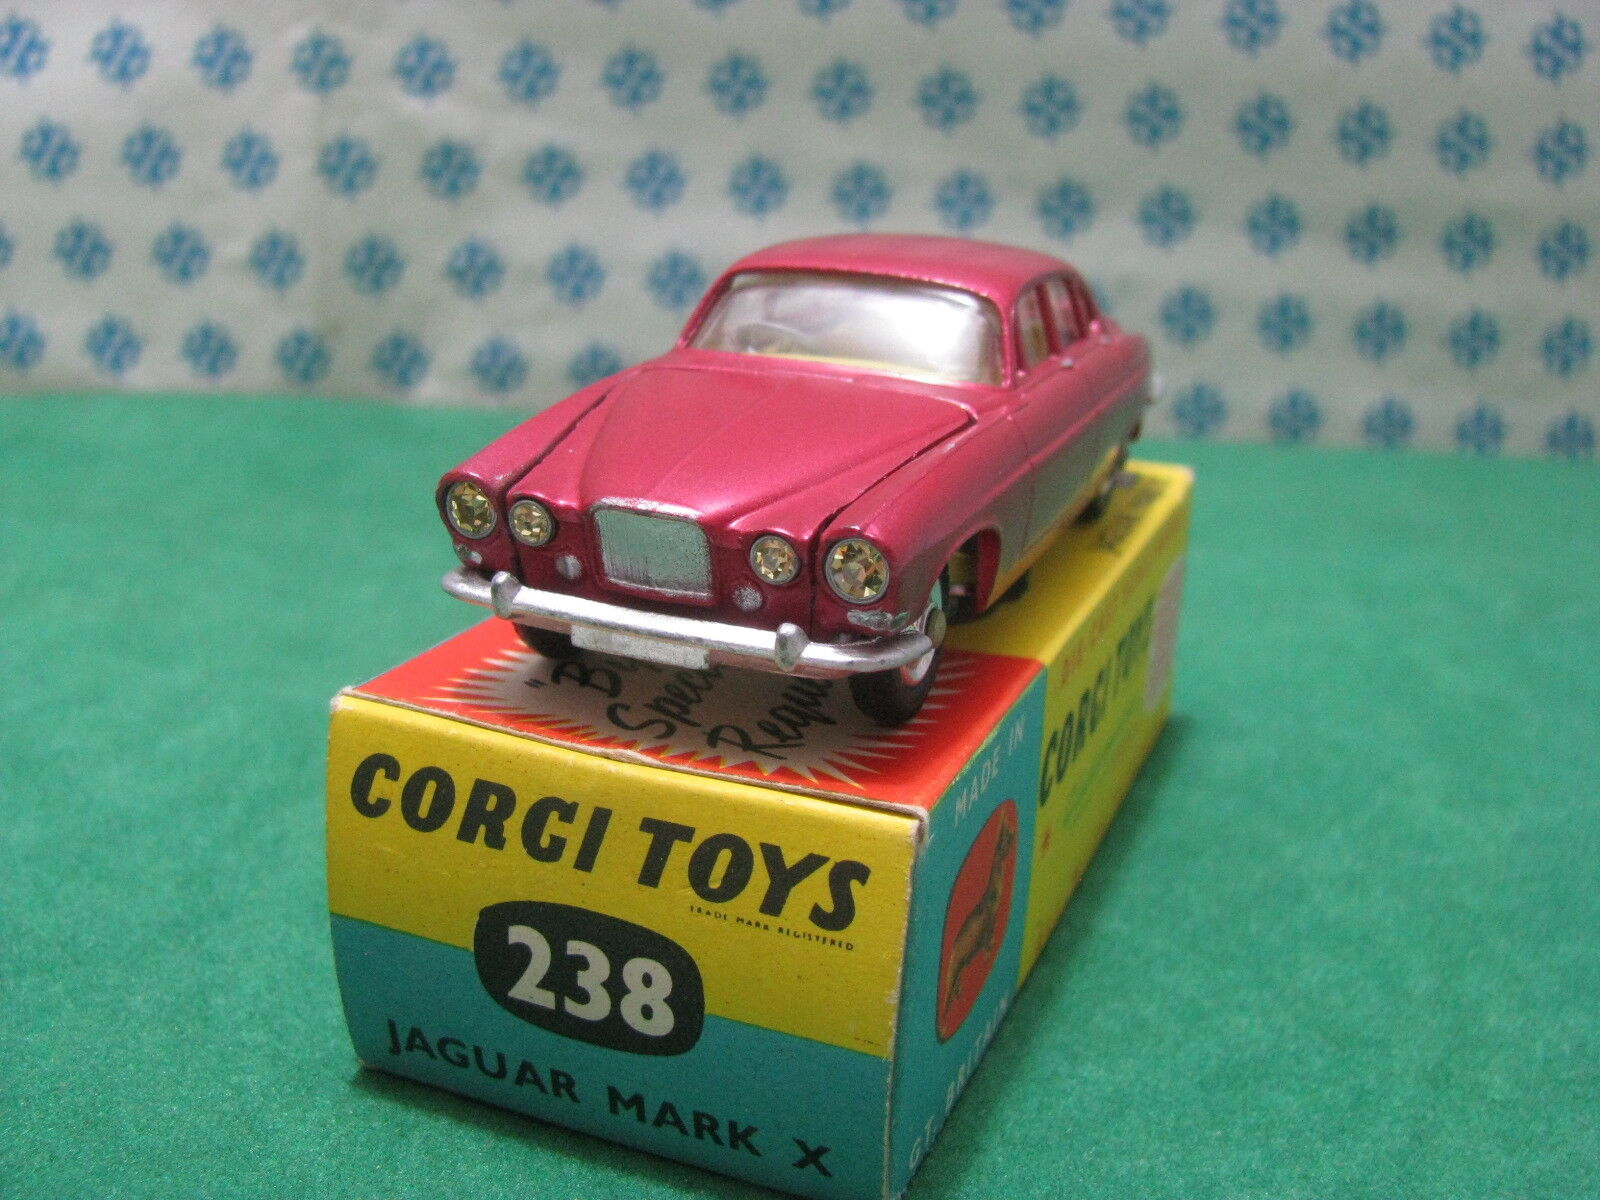 Vintage  -   JAGUAR  MARK  X    - 1 43  Corgi Toys  238  - Mint in Box